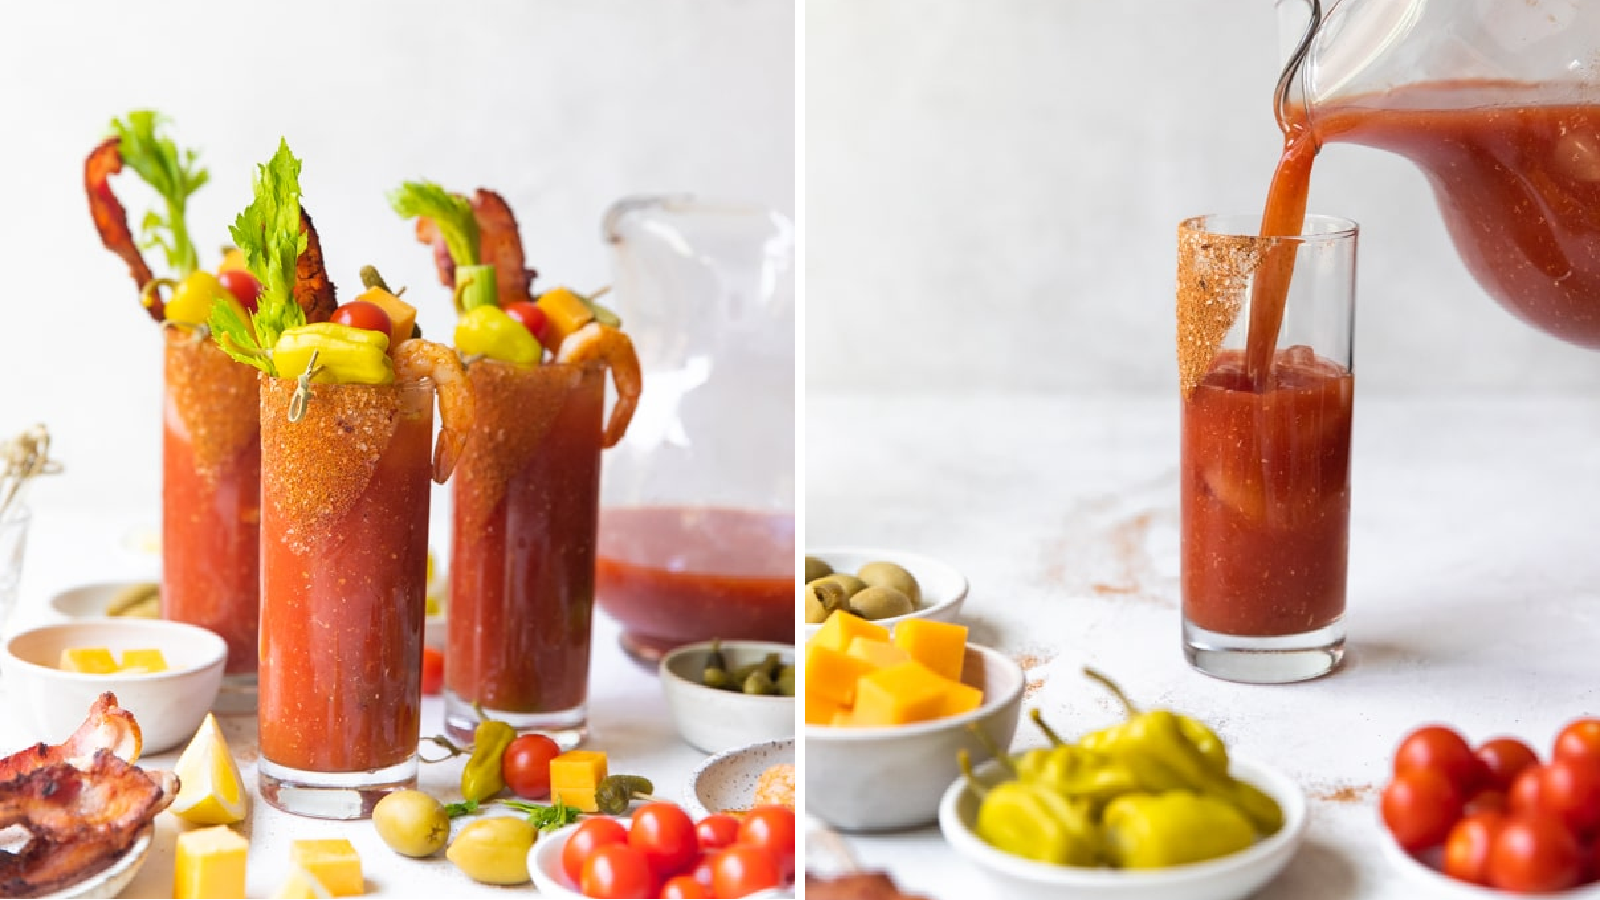 Two images of a spicy bloody mary filled with garnishes like pepperoncinis, pickles, tomatoes, celery, shrimp and bacon including an image of one being built.